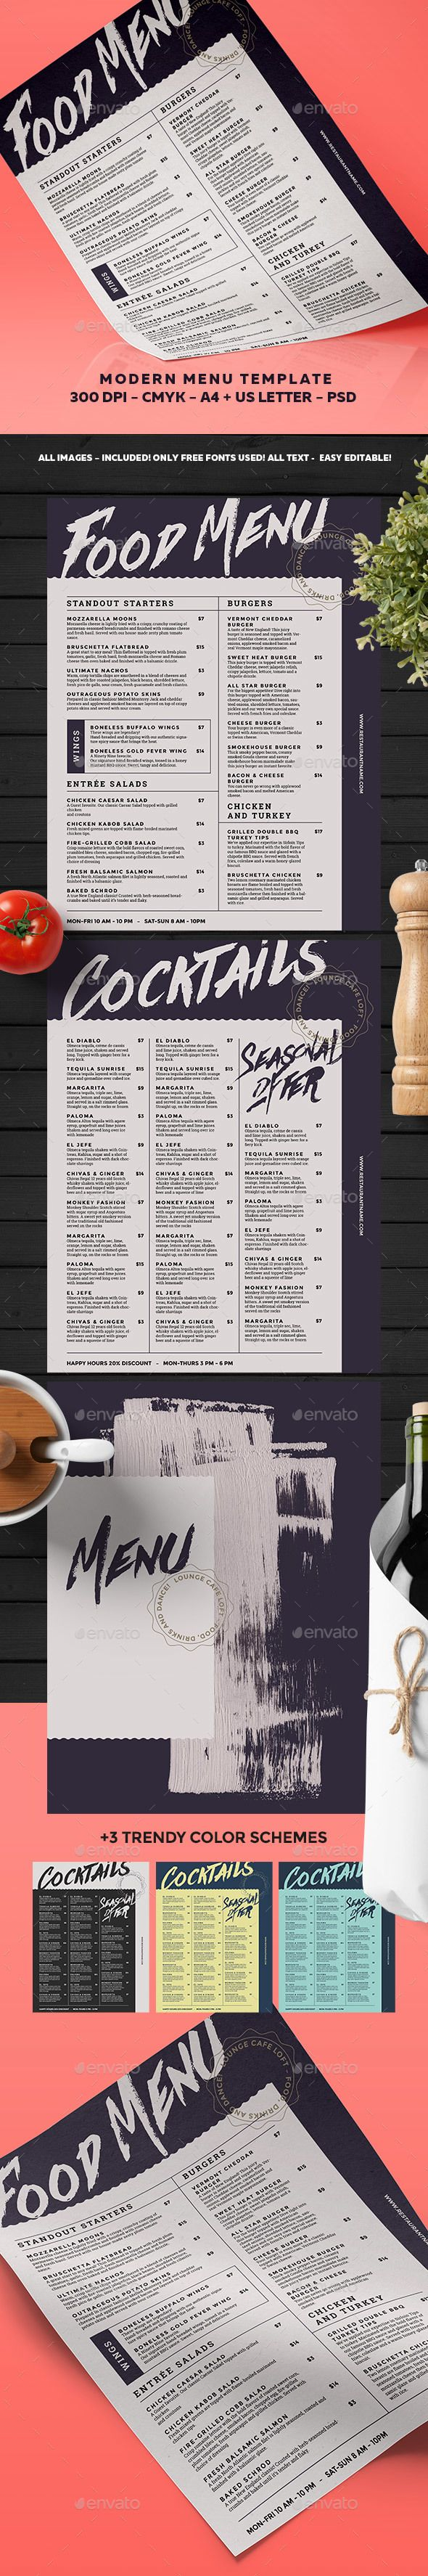 Menu Template #bar #cafe #clean #cocktail #cocktaildrinks #cocktailmenu #drink #drinkmenu #drinksmenu #food #foodmenu #menu #party #restaurant #restaurantmenu #template